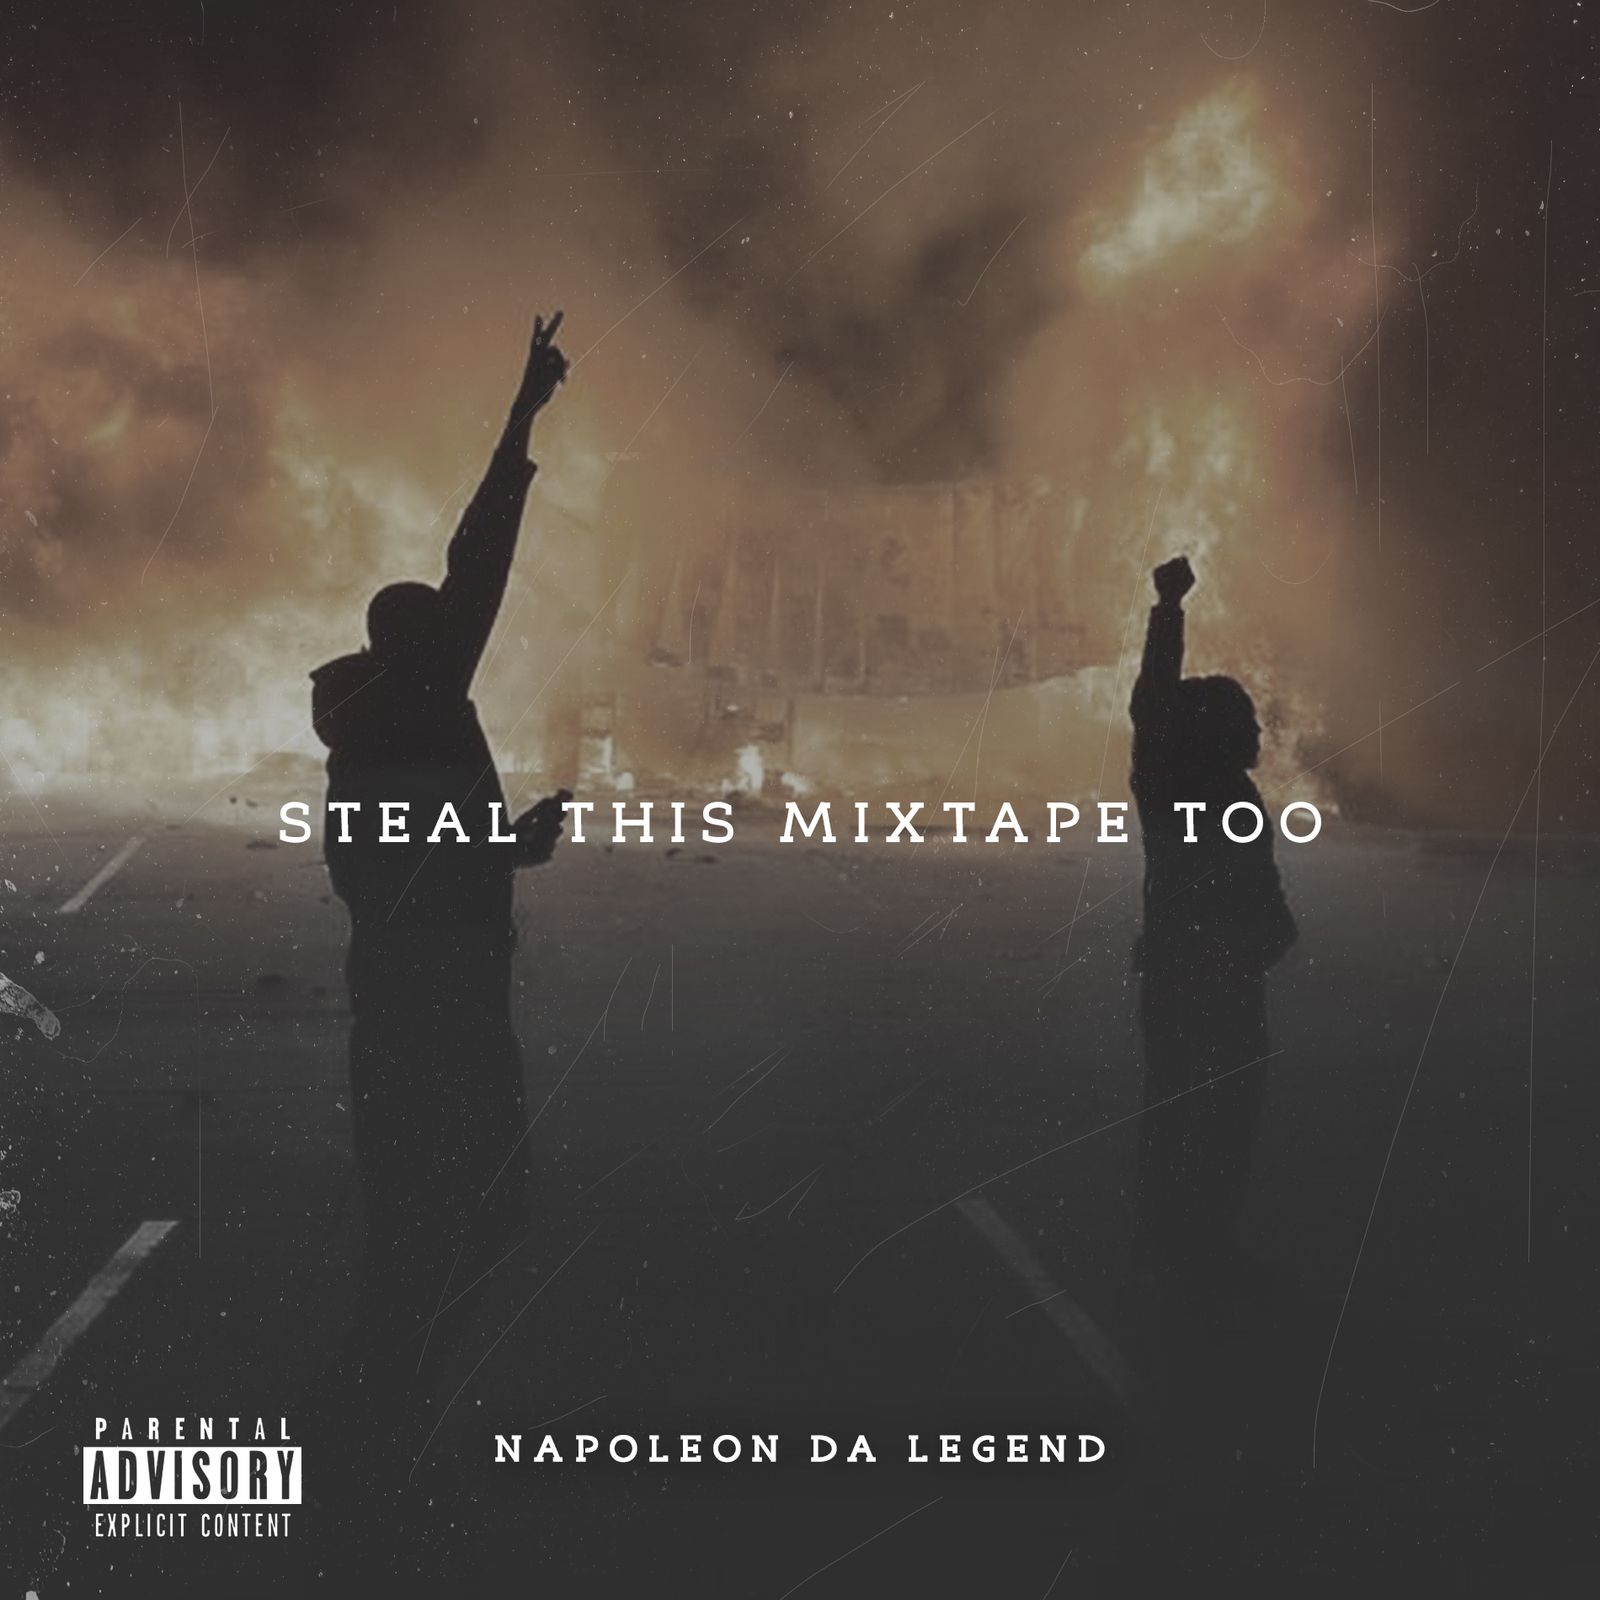 napoleondalegend_stealthismixtapetoo